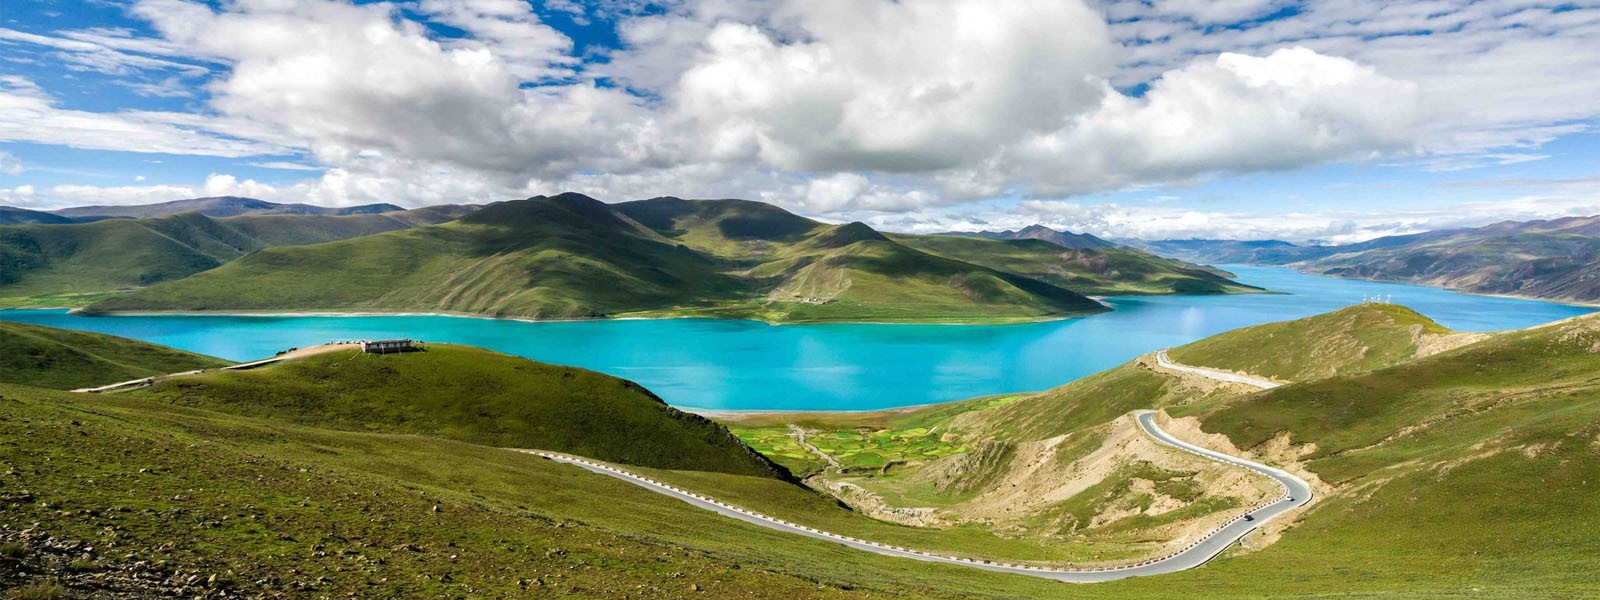 Yamdrok Lake and Kharta Valley Trekking